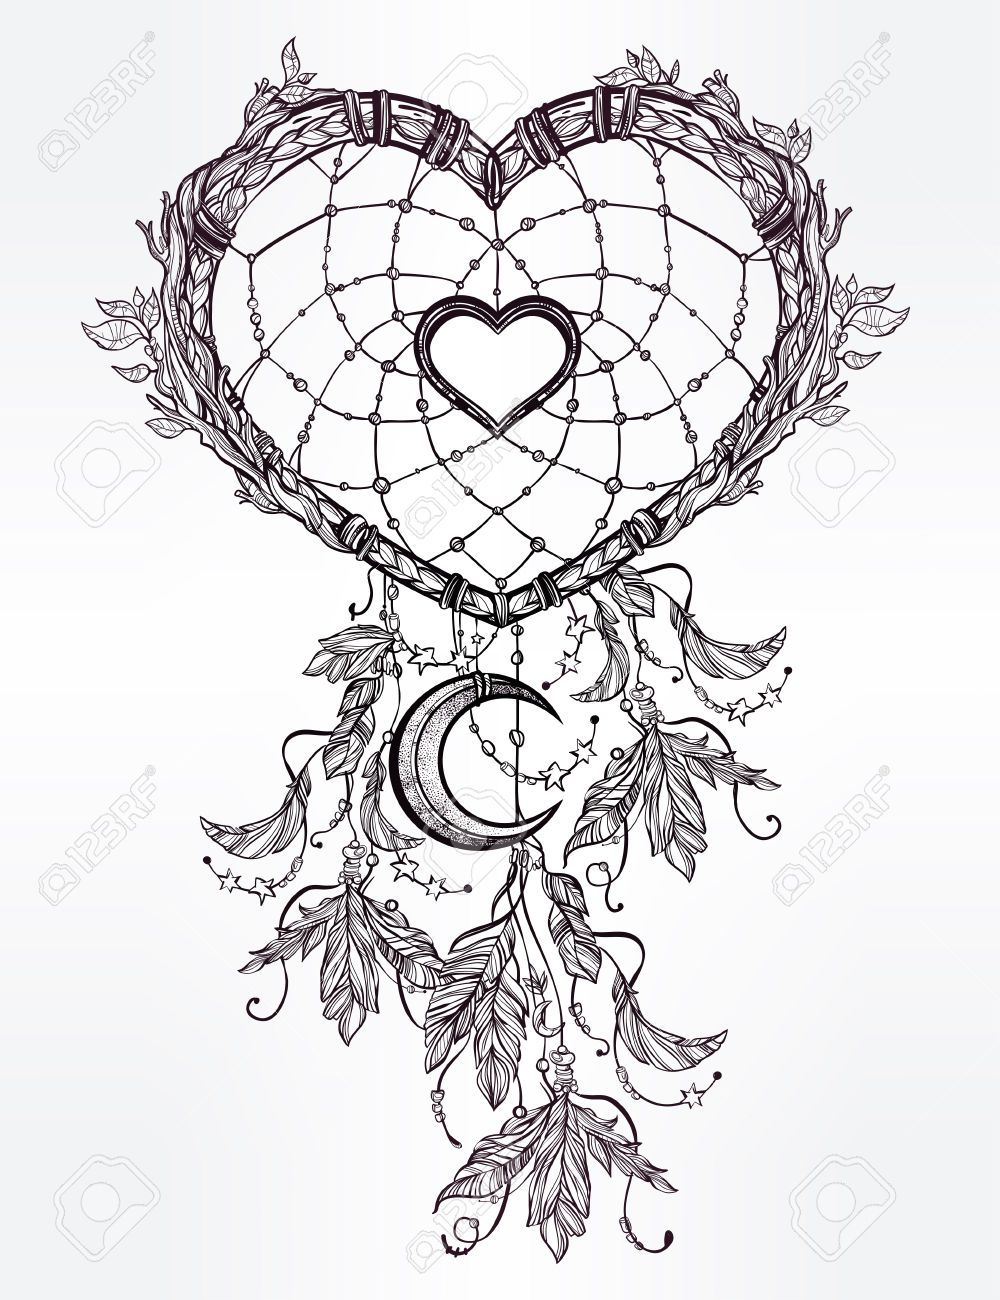 Hand Drawn Romantic Drawing Of A Heart Shaped Dream Catcher Dream Catcher Tattoo Design Dream Catcher Coloring Pages Dream Catcher Drawing